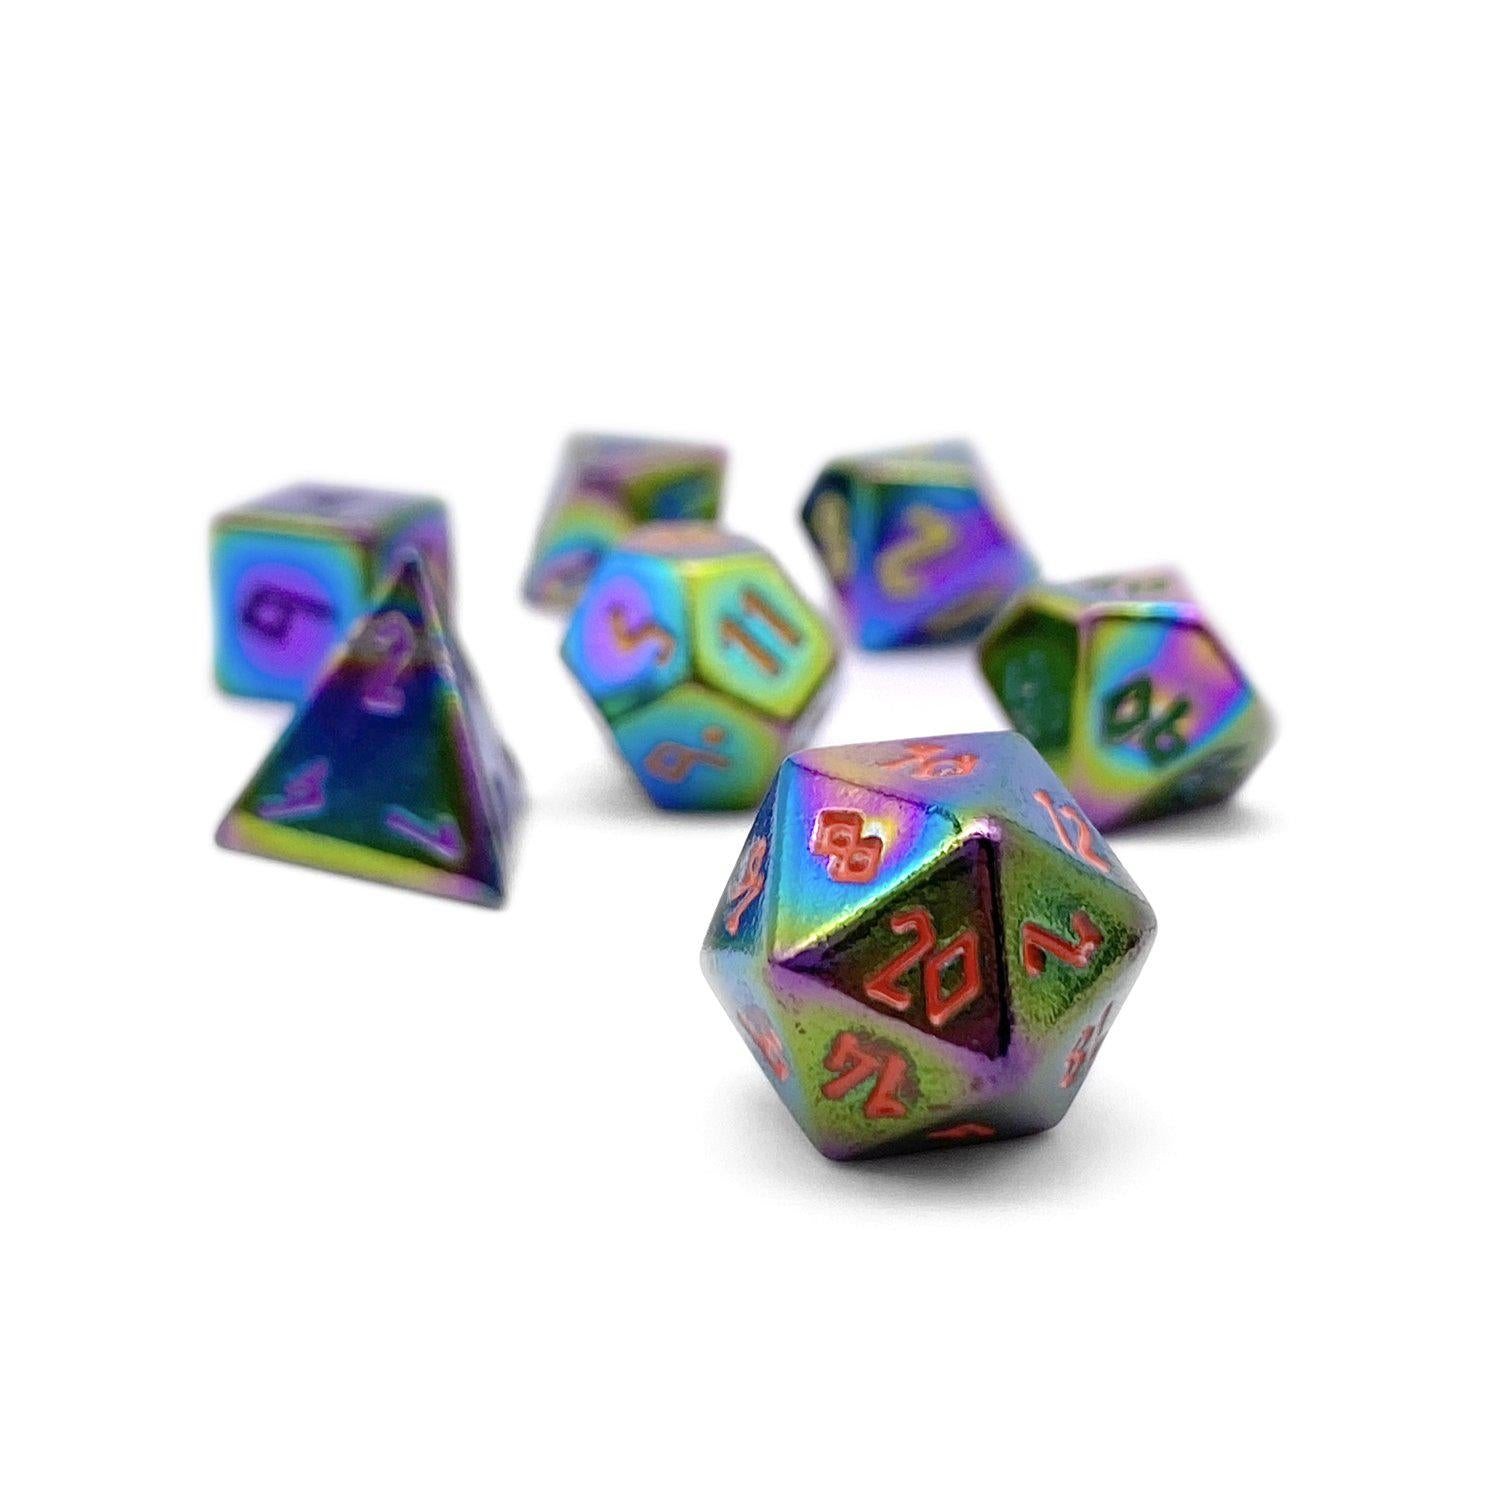 Bi-Frost Pebble ™ Dice - 10mm Alloy Mini Polyhedral Dice Set